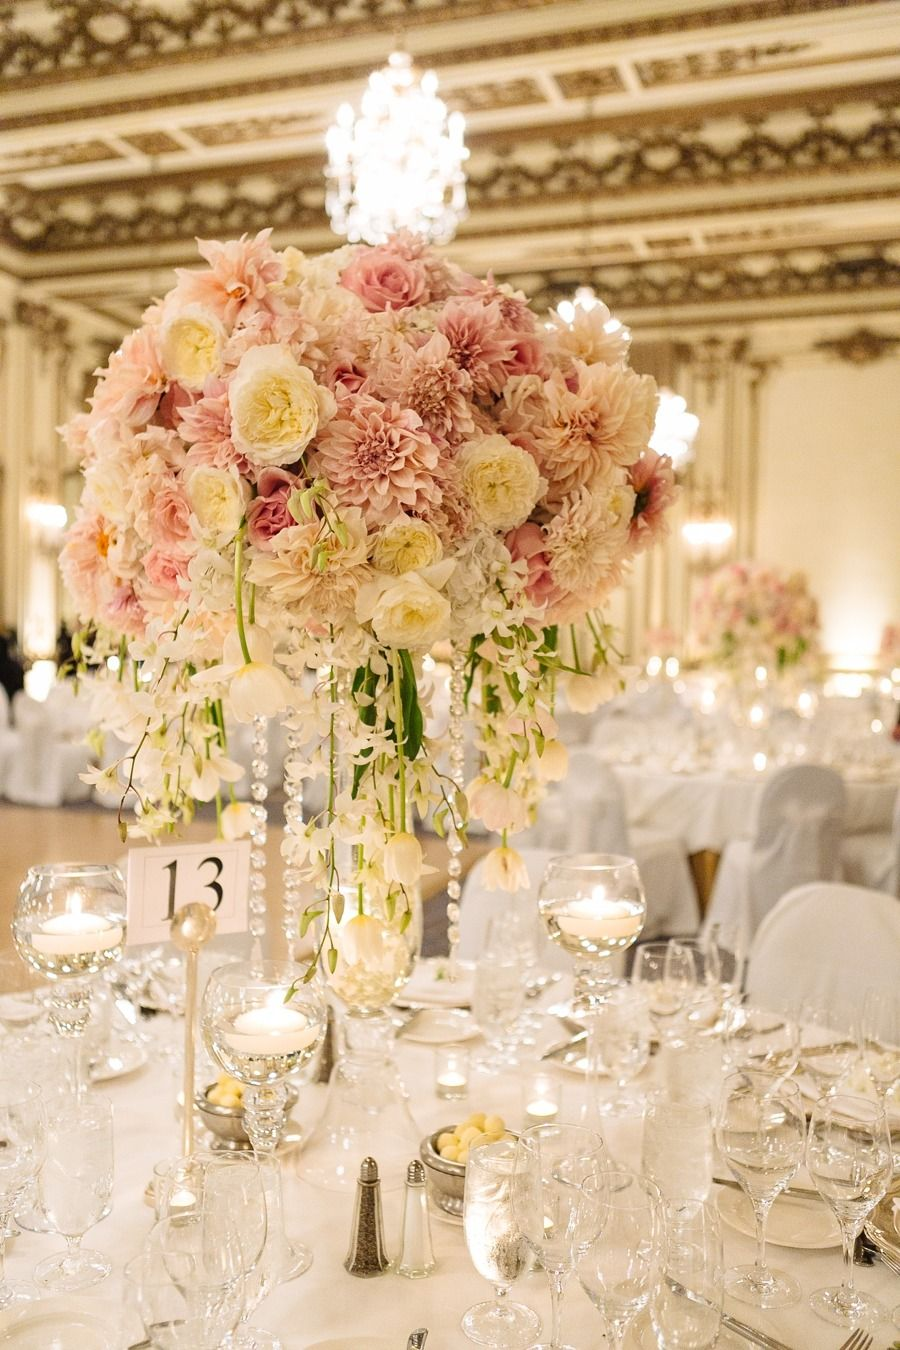 Elegant Blush + Gold Wedding at The Fairmont | Heres ...